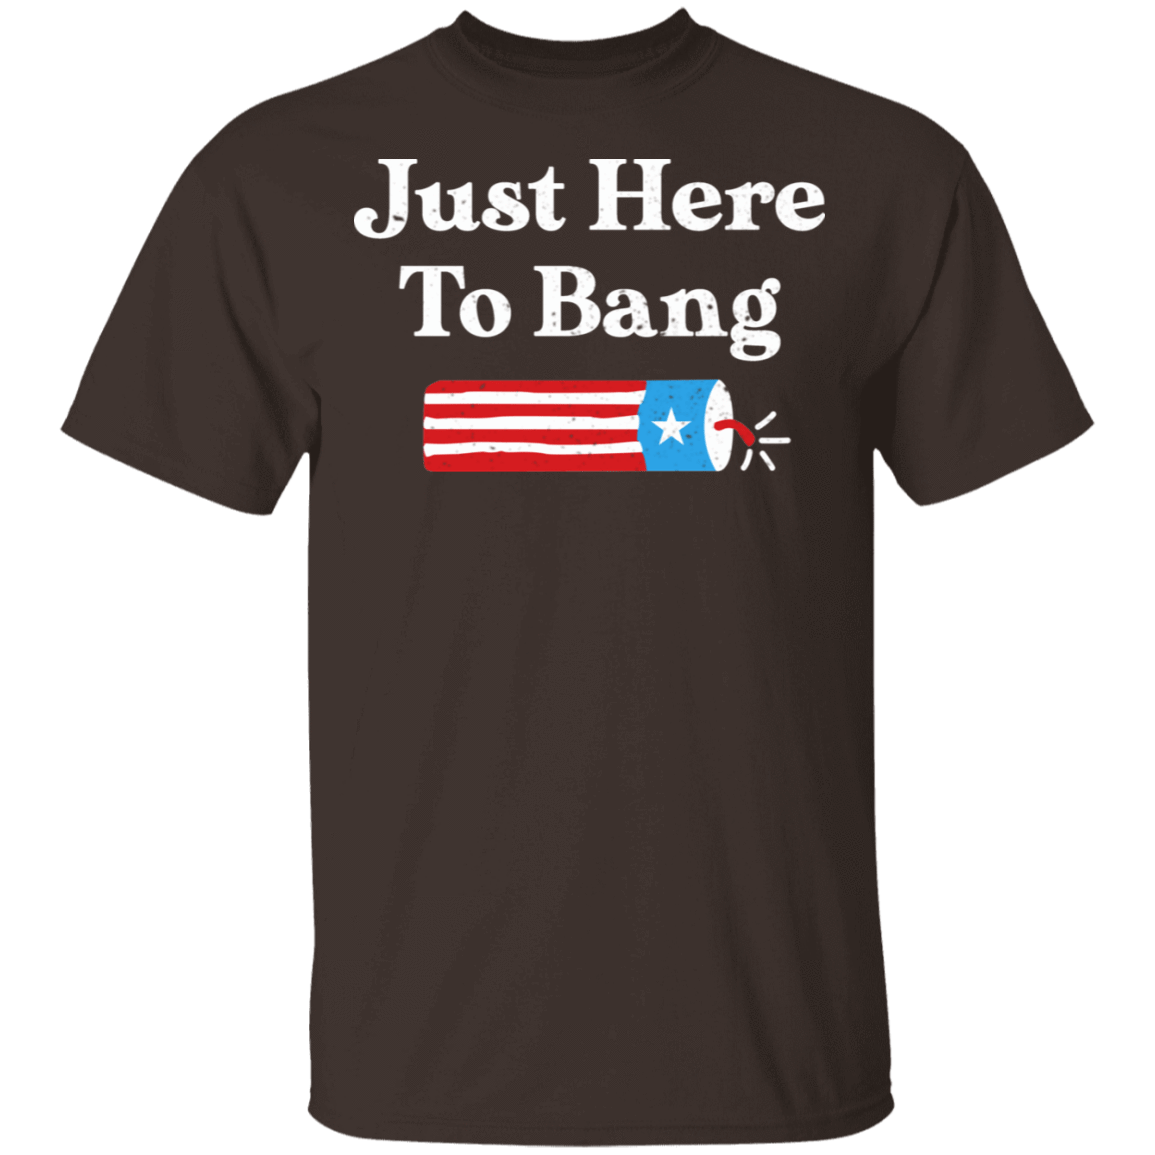 Just Here to Bang 4th of July T-Shirts, Hoodies, Tank 22-2283-79658435-12087 - Tee Ript